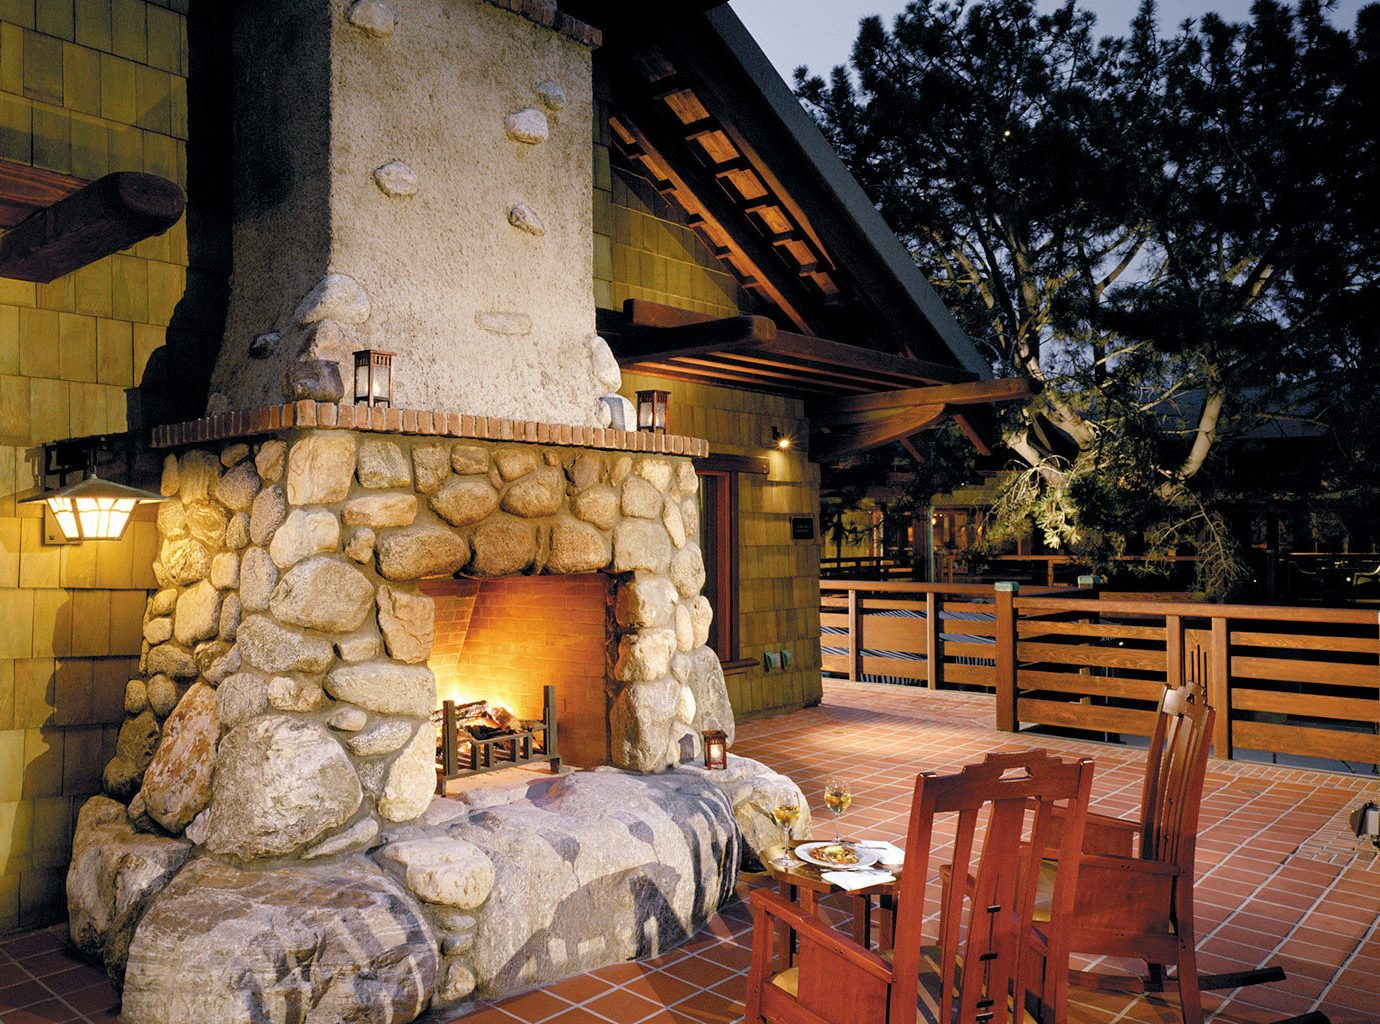 Hotels Living Lounge Luxury Rustic outdoor house log cabin home cottage wood estate backyard area stone furniture